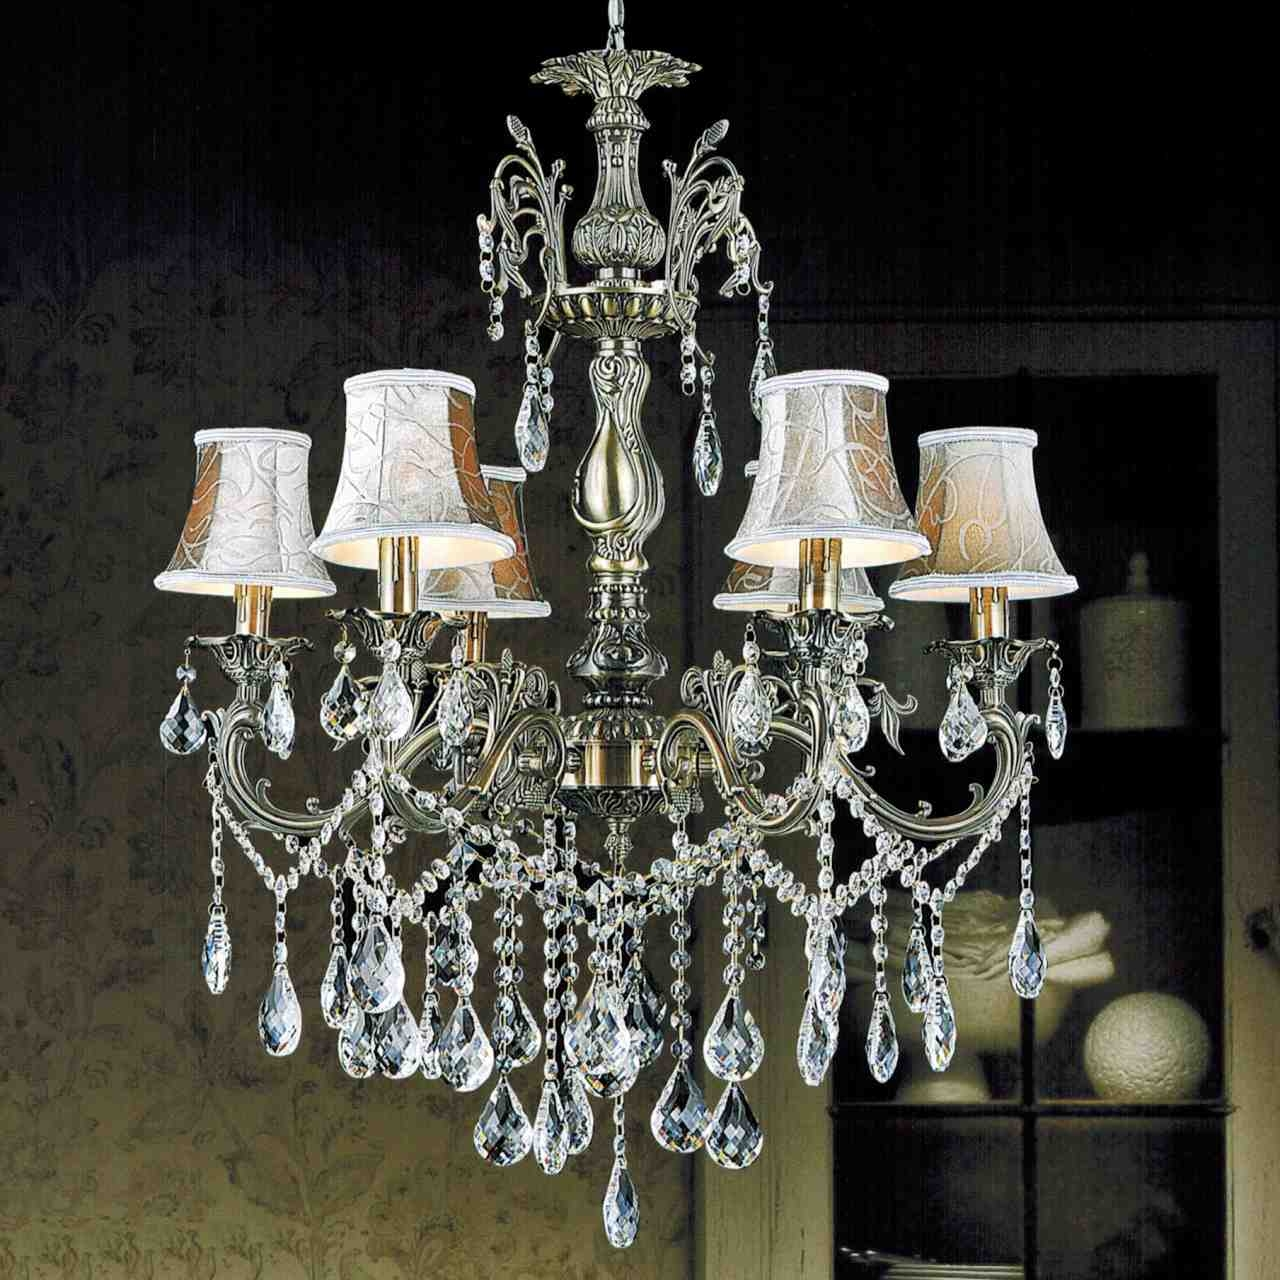 Brizzo Lighting Stores 26 Ottone Traditional Candle Round Throughout Traditional Crystal Chandeliers (Image 2 of 15)